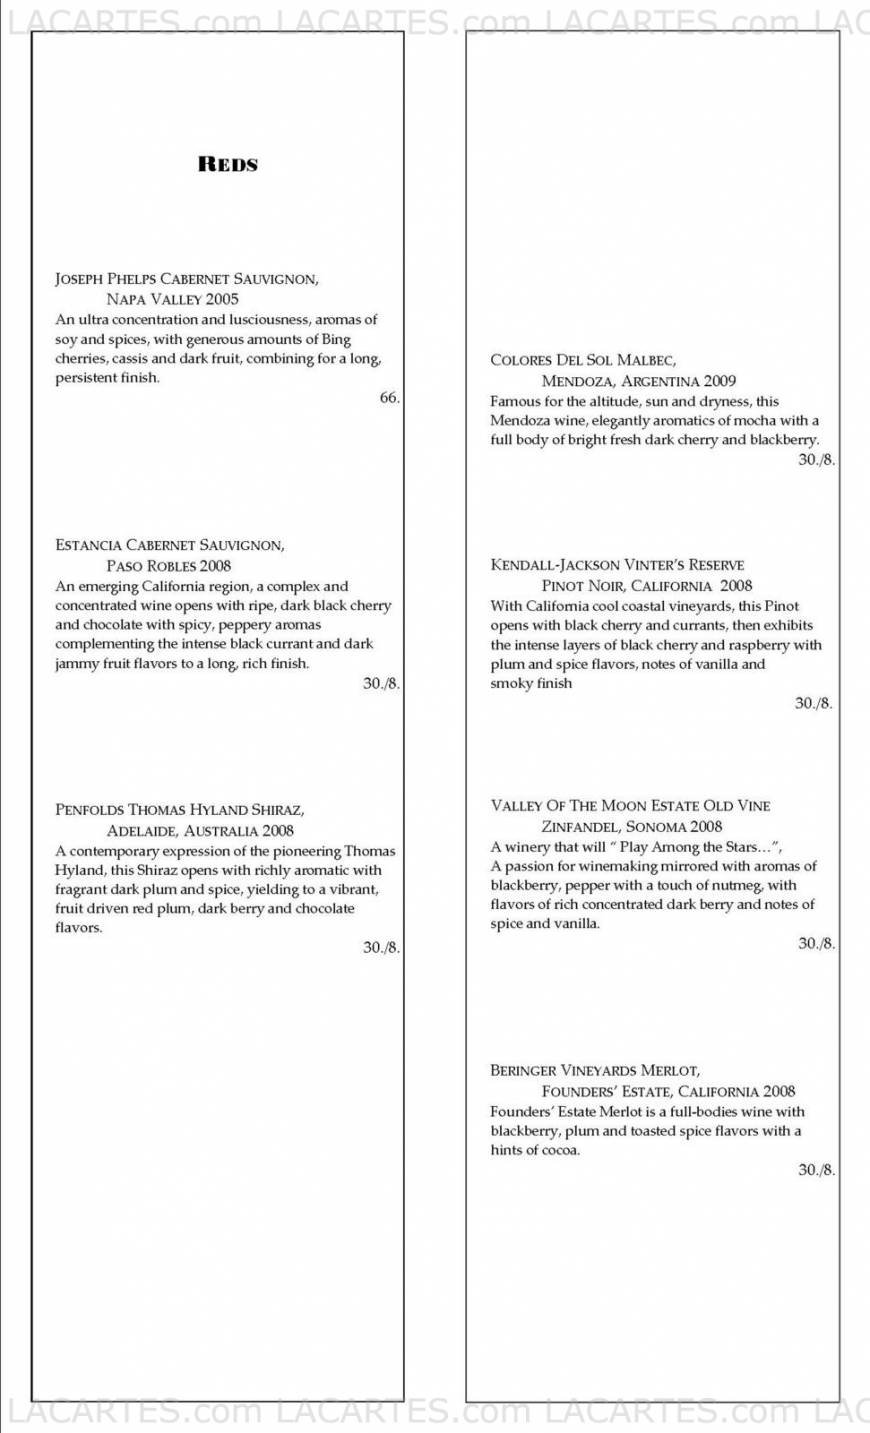 Osha Thai Restaurant-Valencia St. San Francisco Price Lists Page 13 of 18